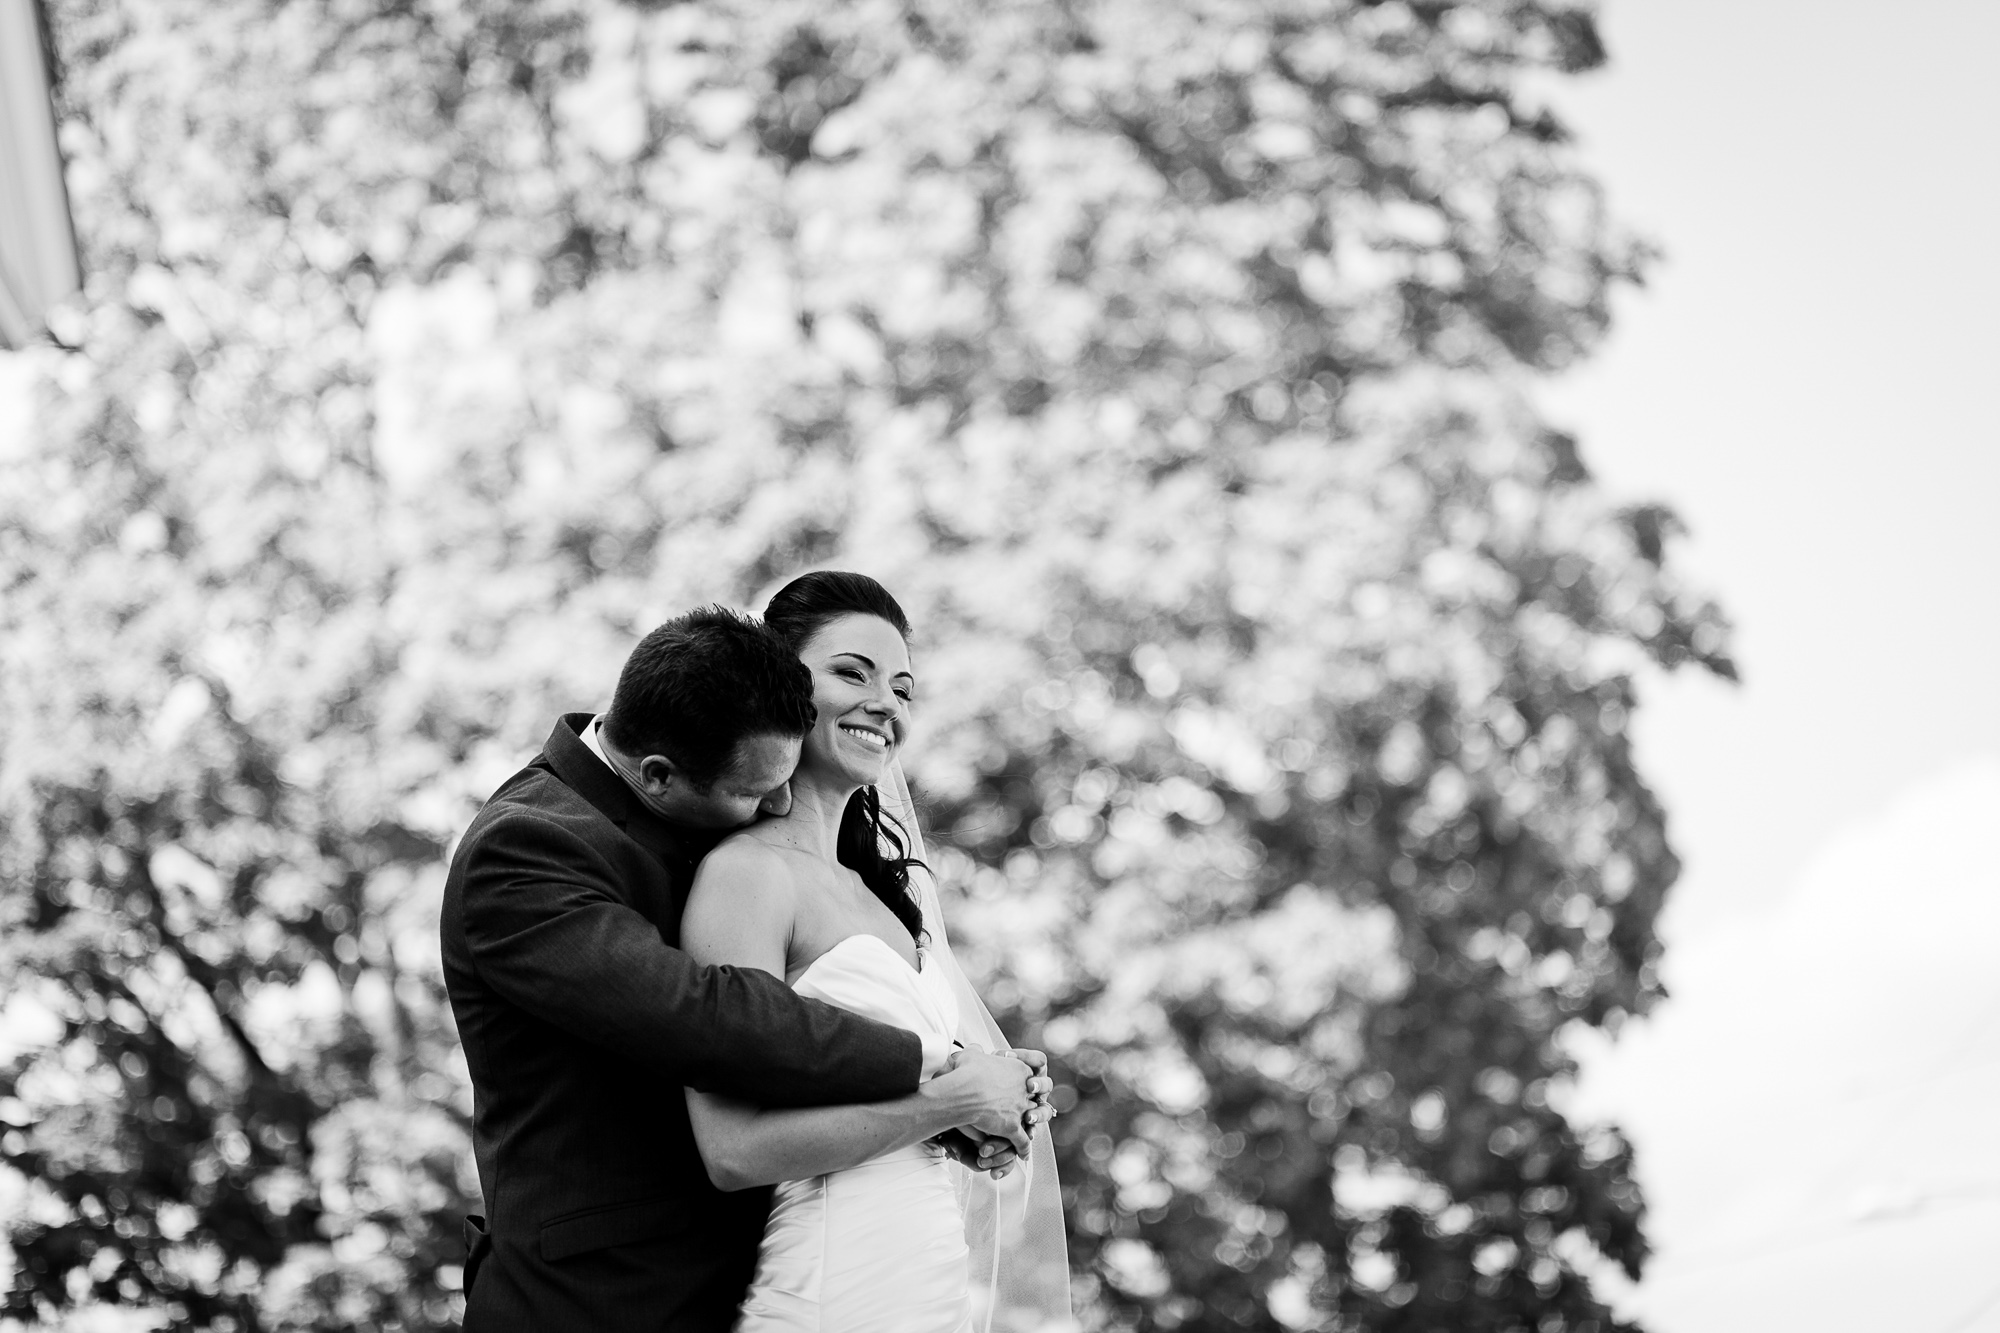 Intimate Wedding Photographer in Somerville NJ - Jenna perfette Photography